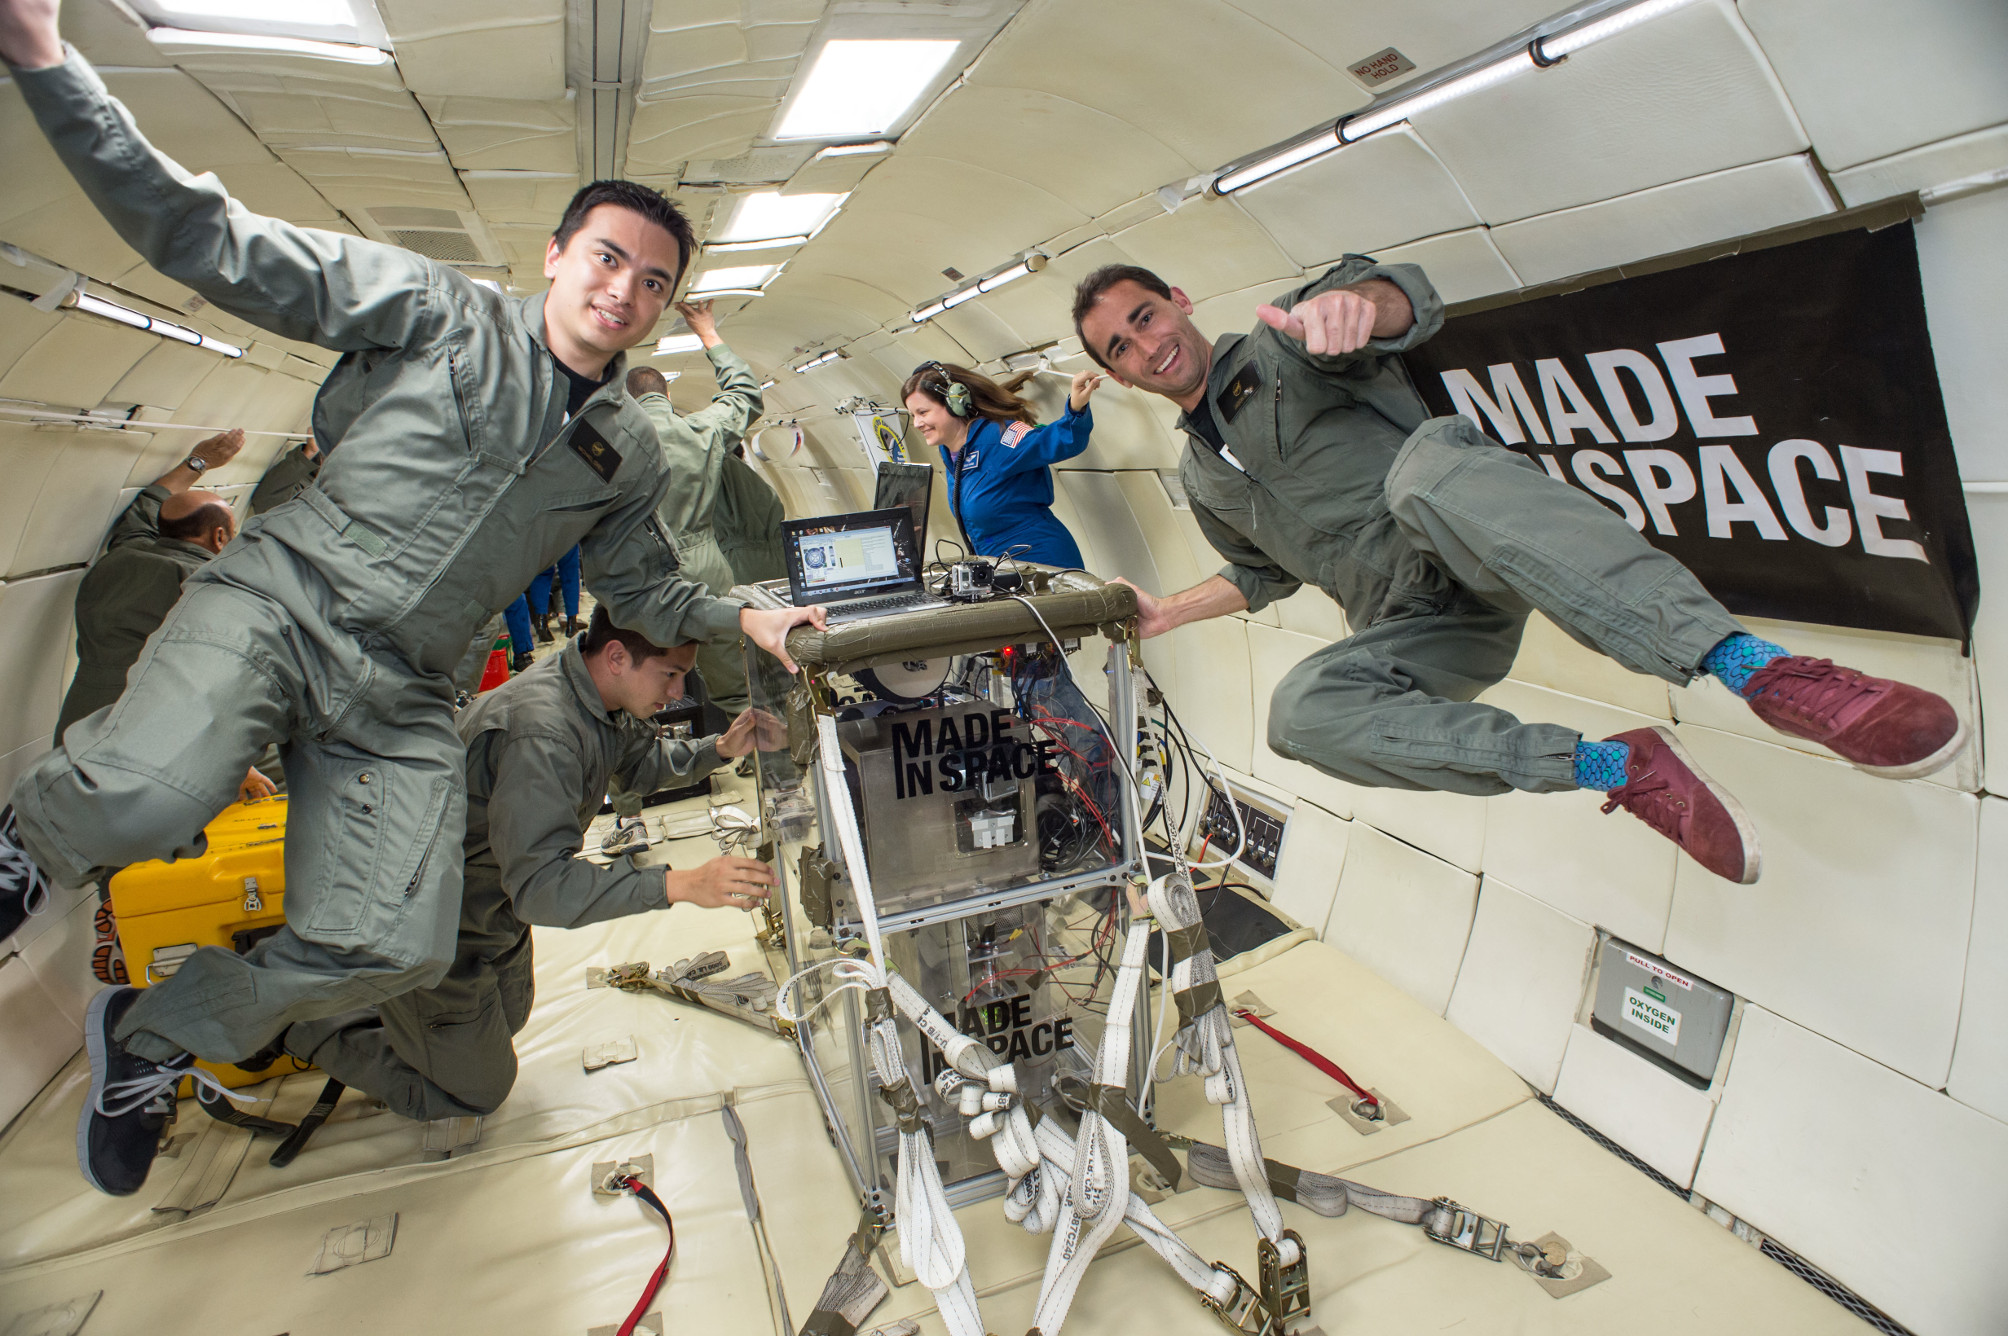 3D Printing on the ISS: Perspectives from Made in Space